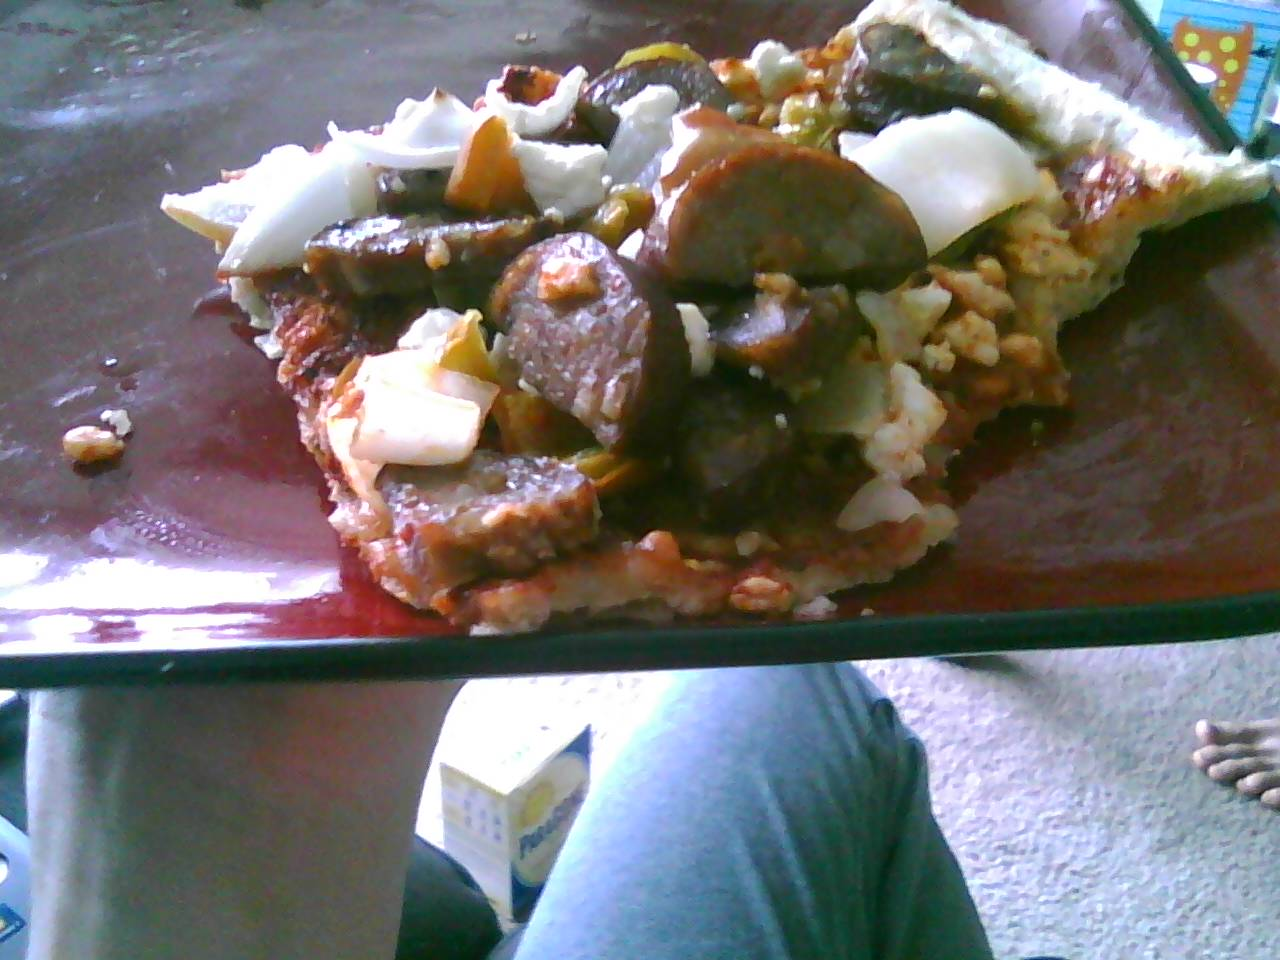 Soy free, gluten free pizza! By me =)